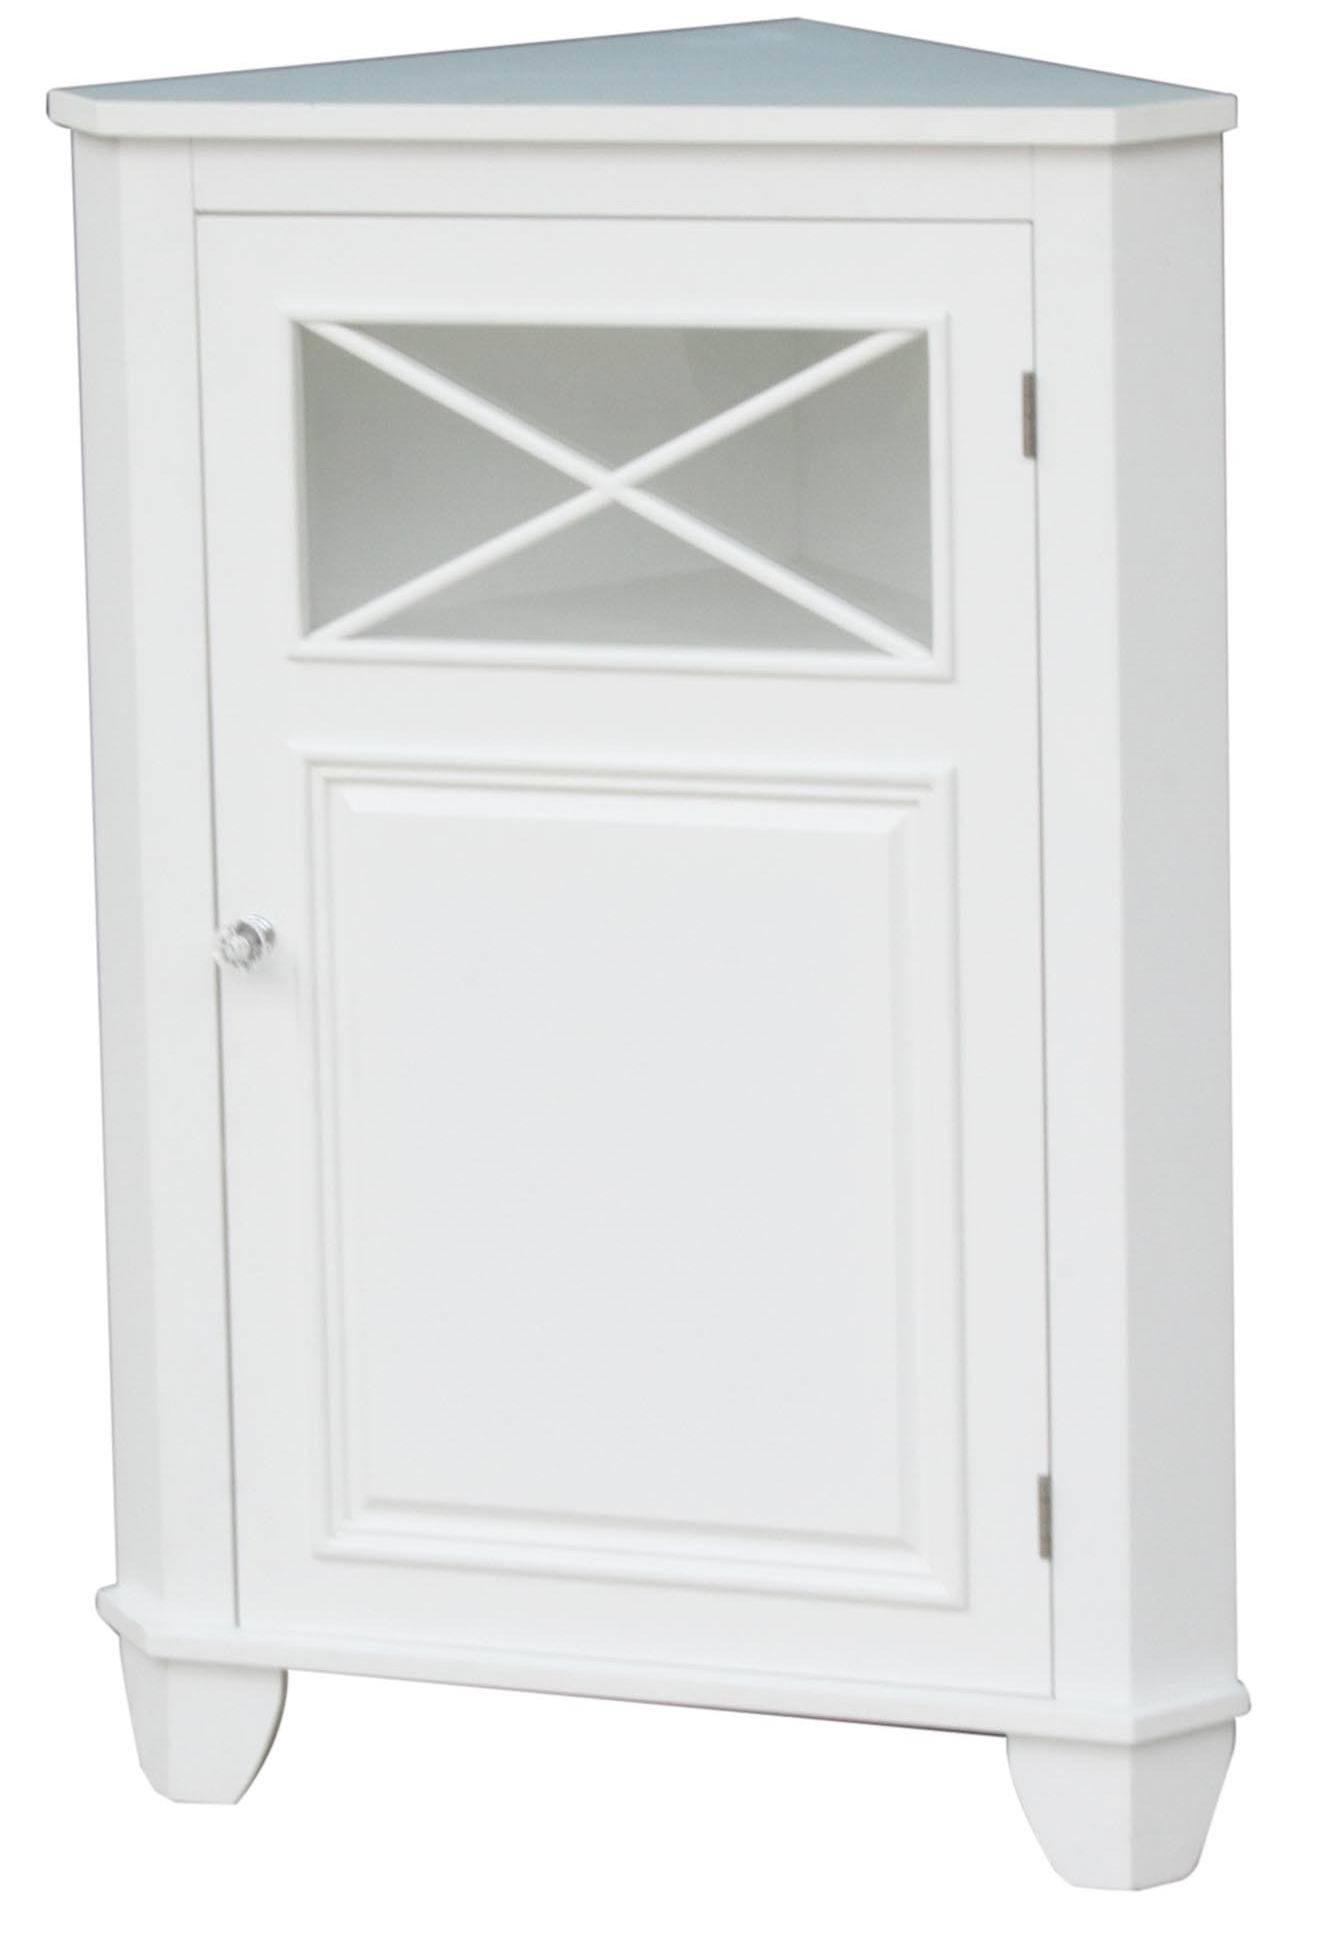 China 1 door corner cabinet china cabinet bathroom cabinet for 1 door cupboard